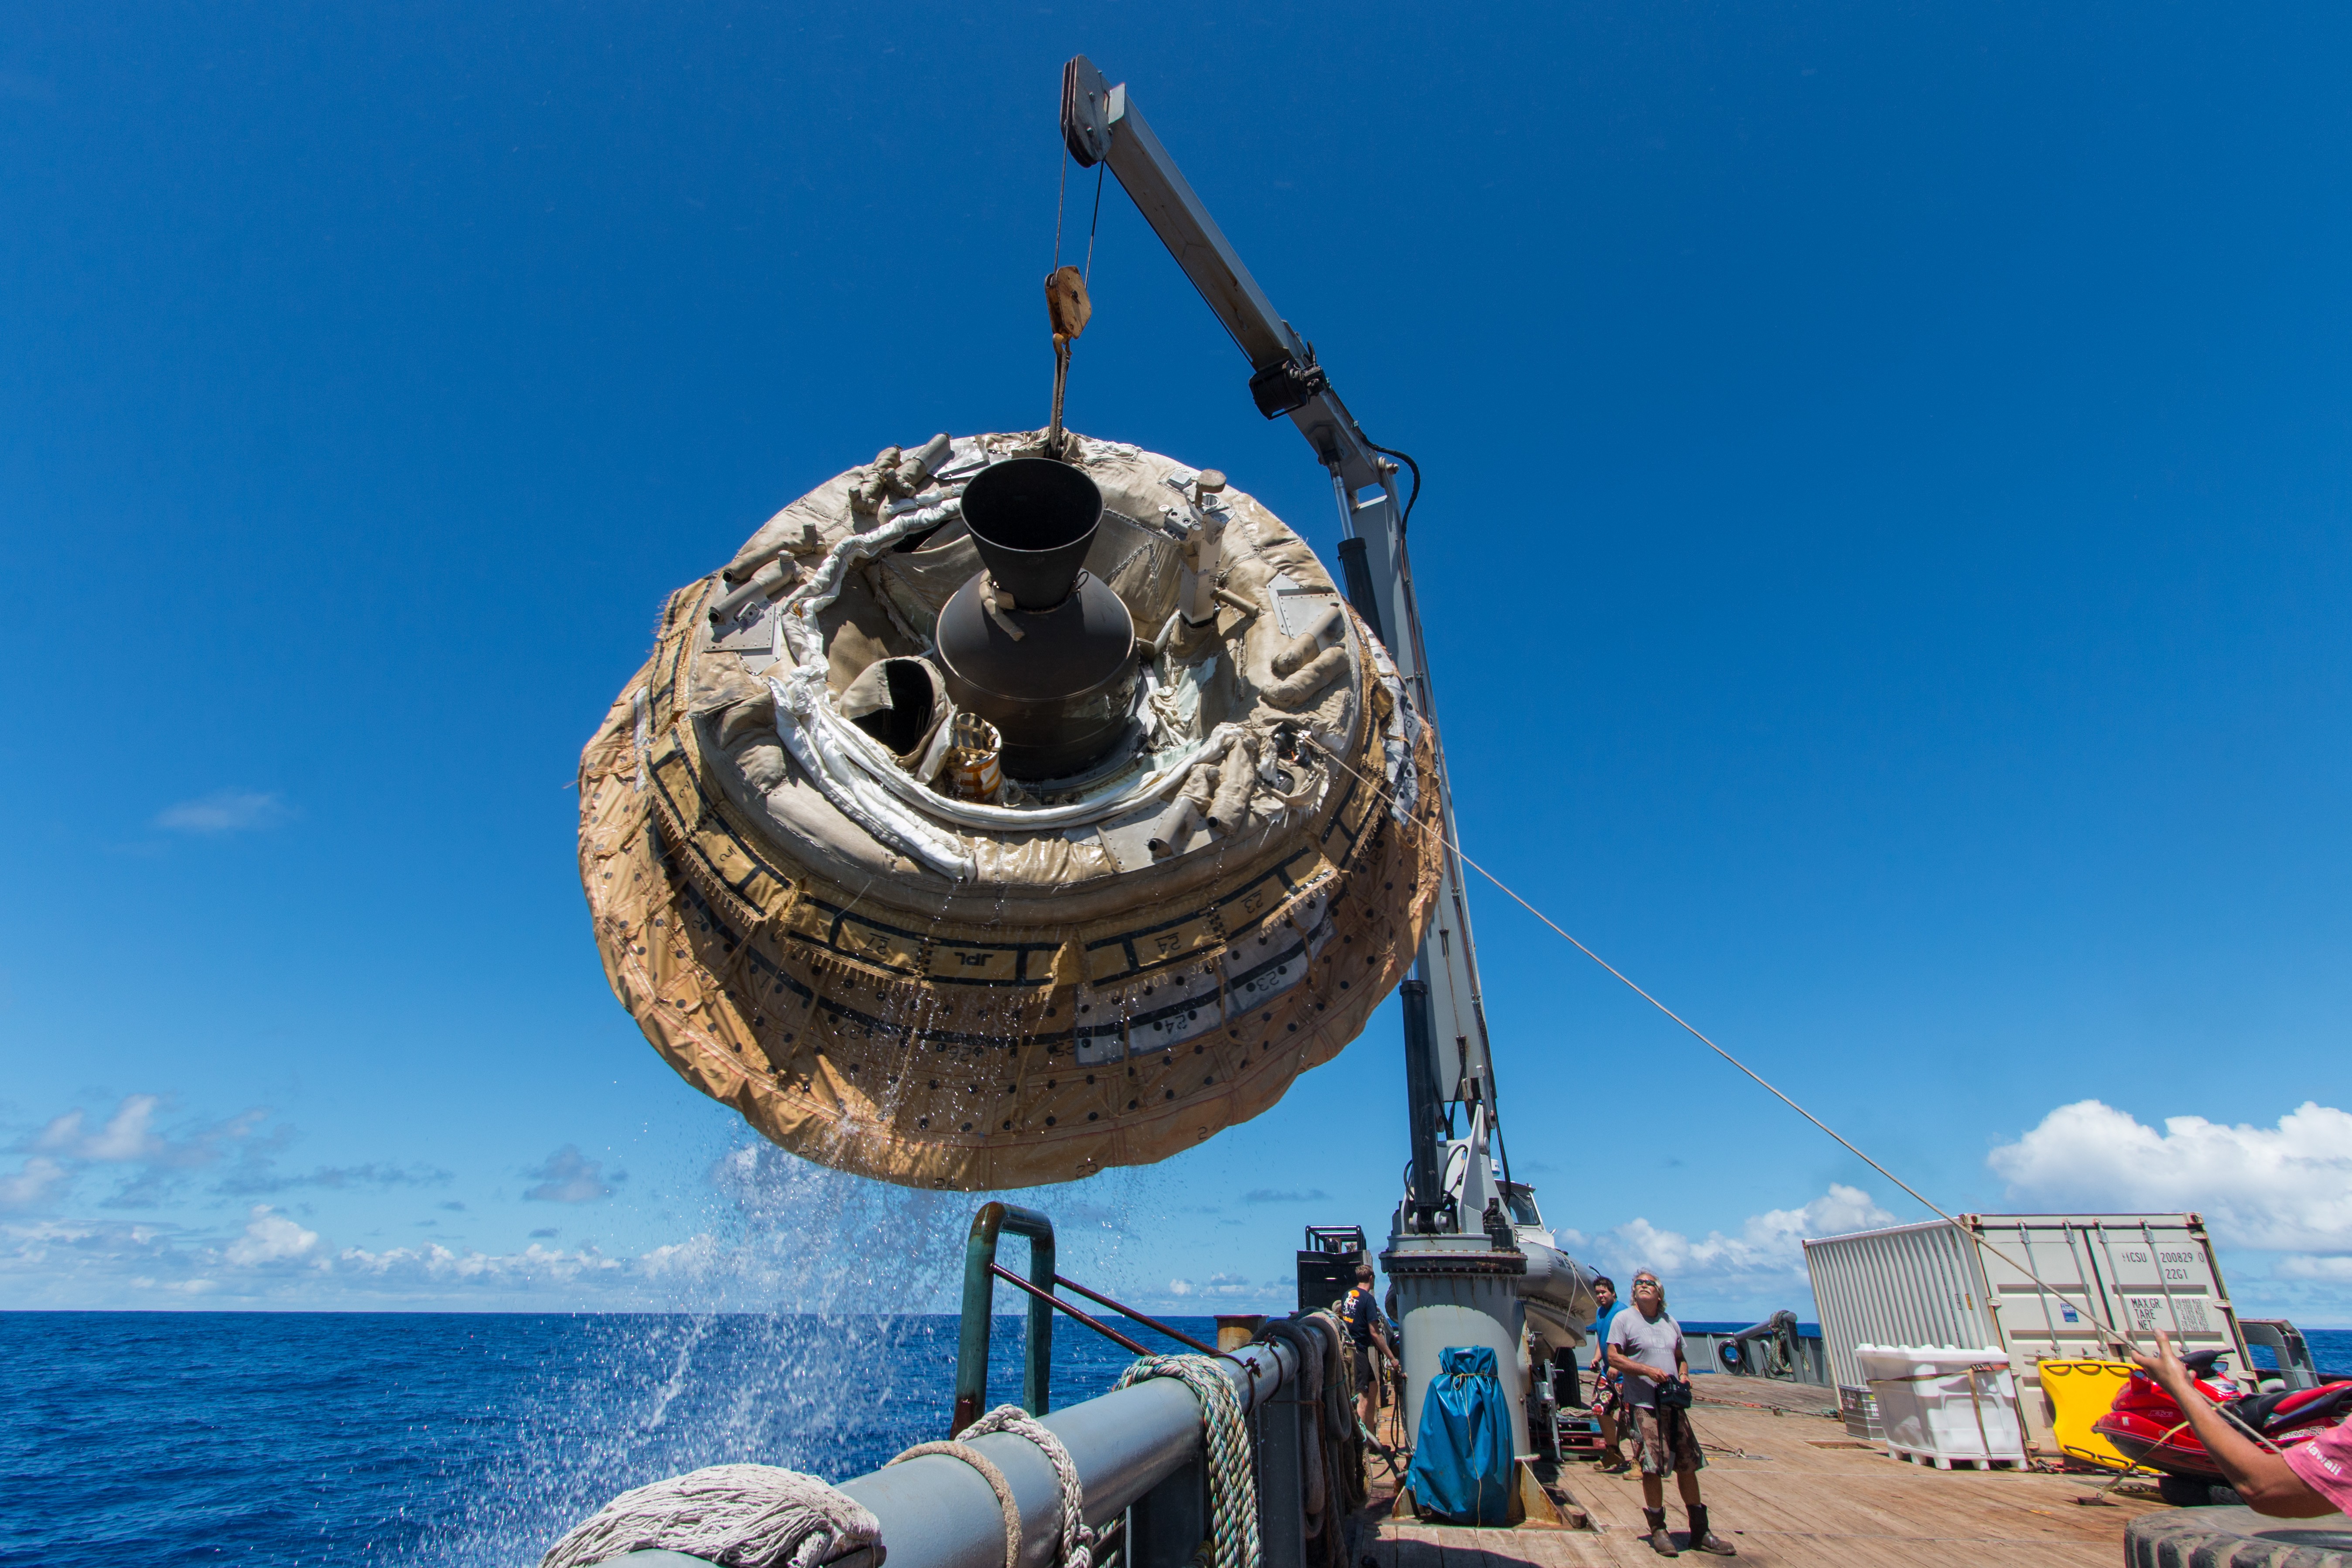 Hours after the June 28, 2014, test of NASA's Low-Density Supersonic Decelerator over the U.S. Navy's Pacific Missile Range, the saucer-shaped test vehicle is lifted aboard the Kahana recovery vessel. Image Credit: NASA/JPL-Caltech